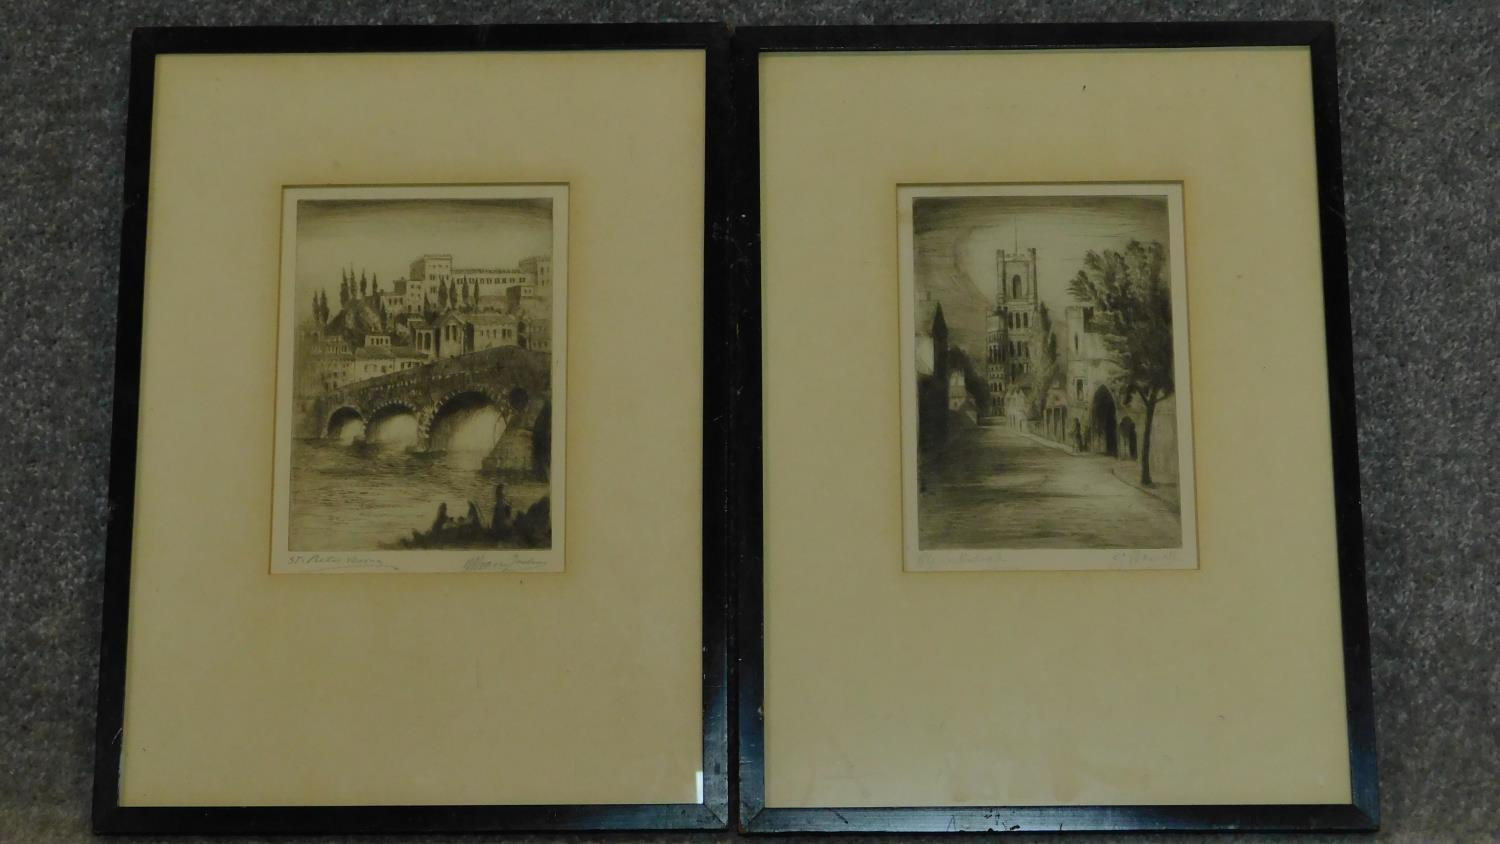 Two framed and glazed etchings, each signed by the artist. 40x30cm